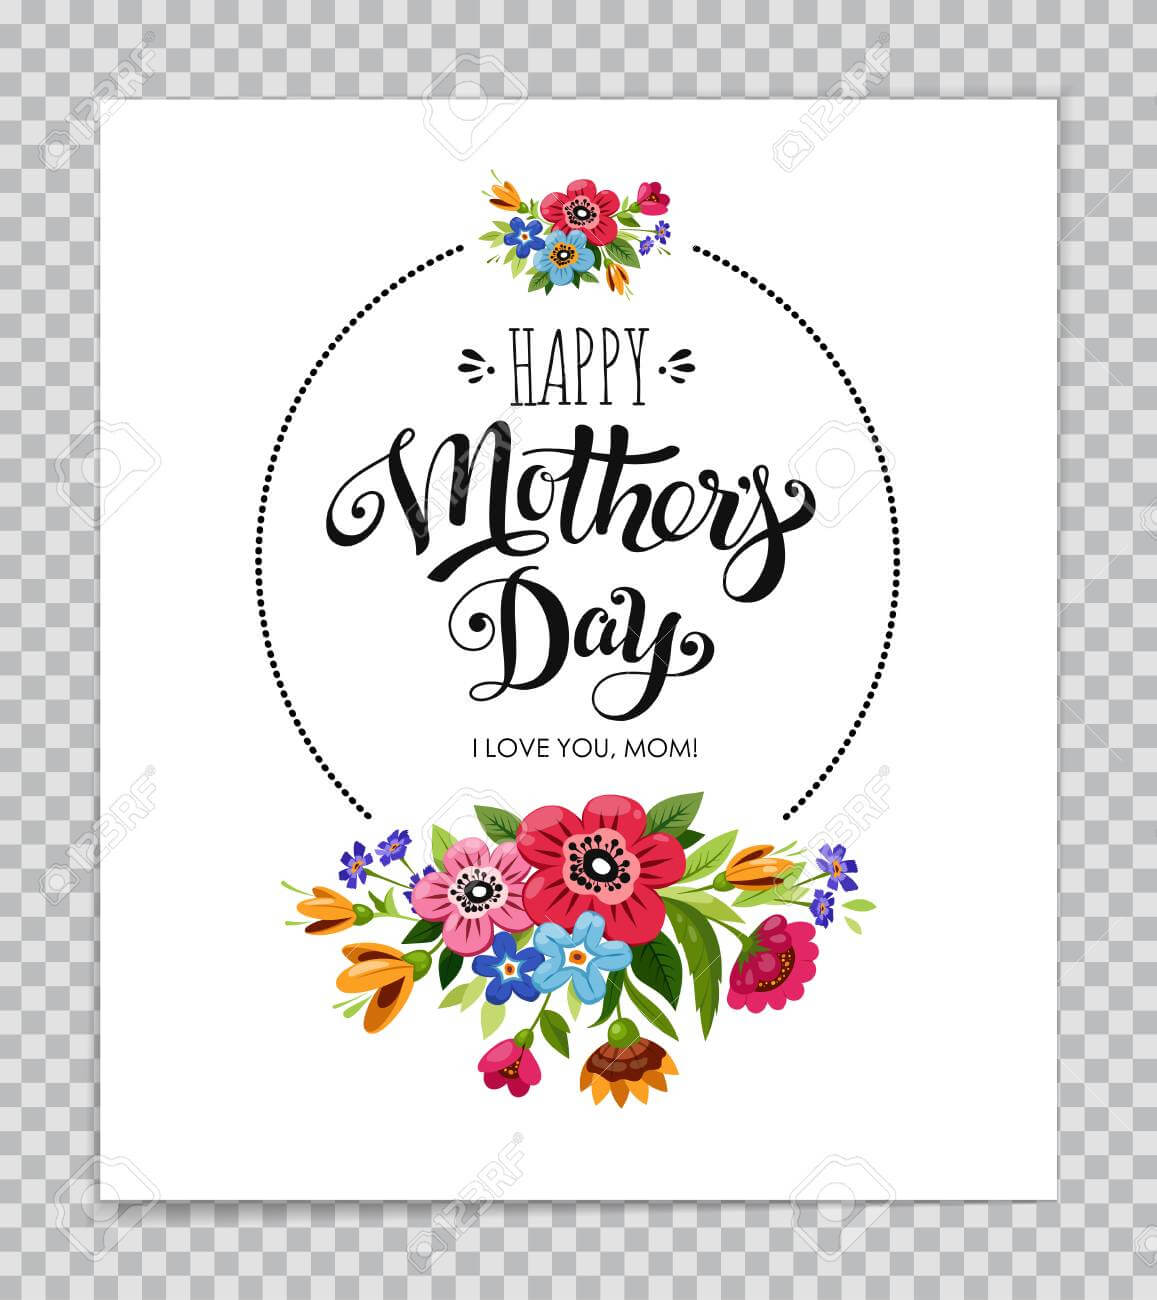 Mothers Day Card Template With Floral Design On Transparent Background. intended for Mothers Day Card Templates